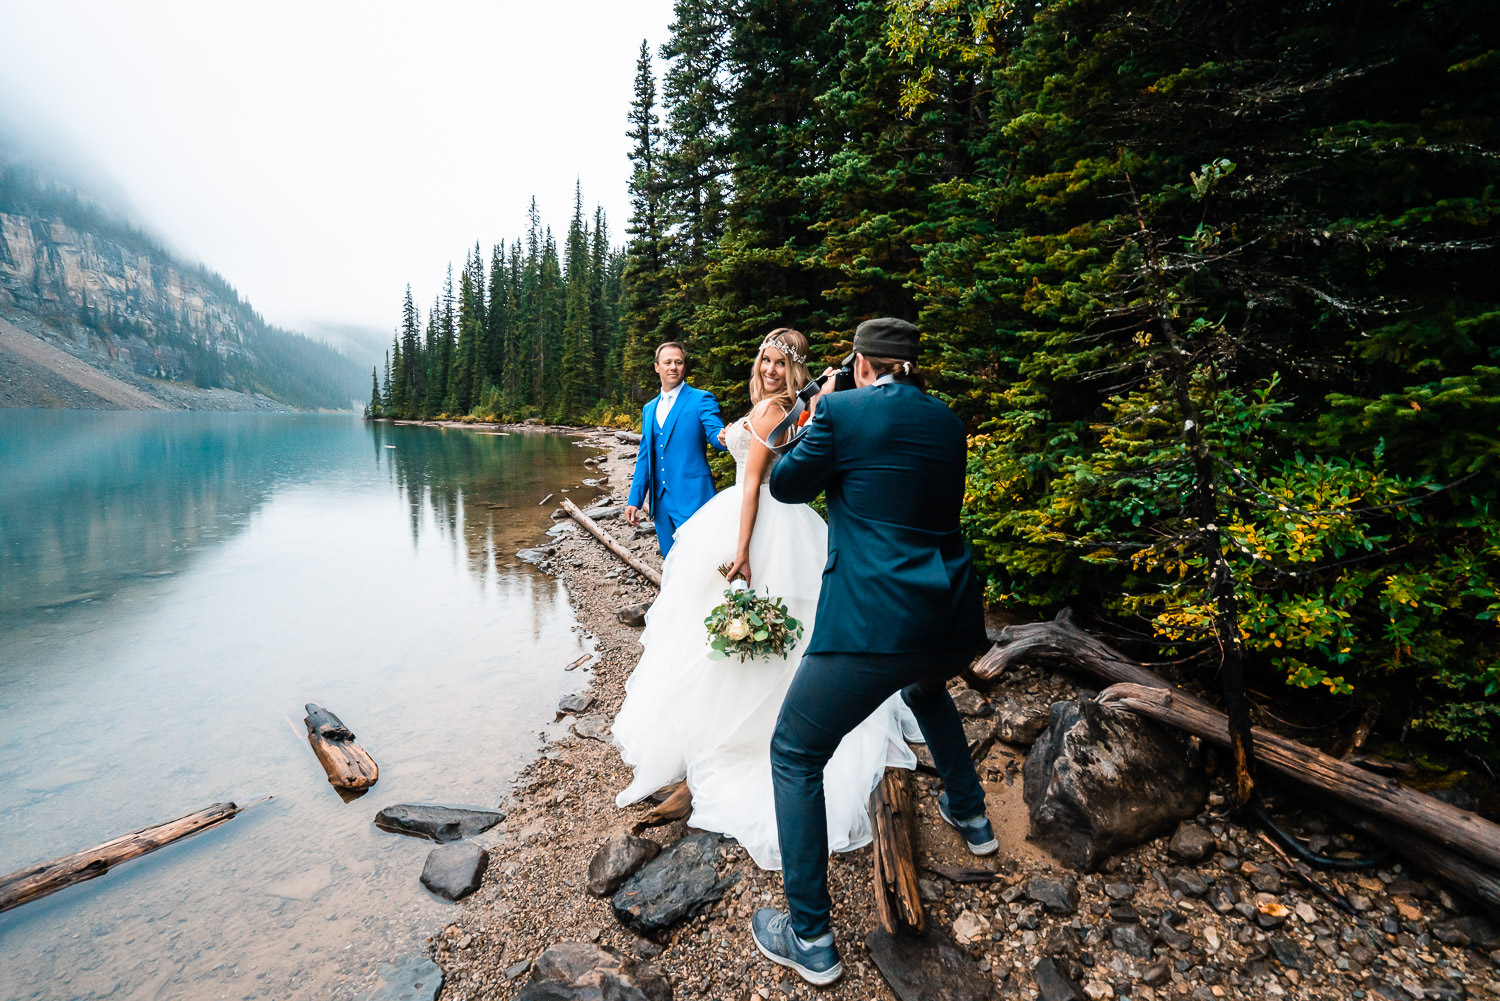 Best_Of_2019_Elopements_Weddings_Colorado-92